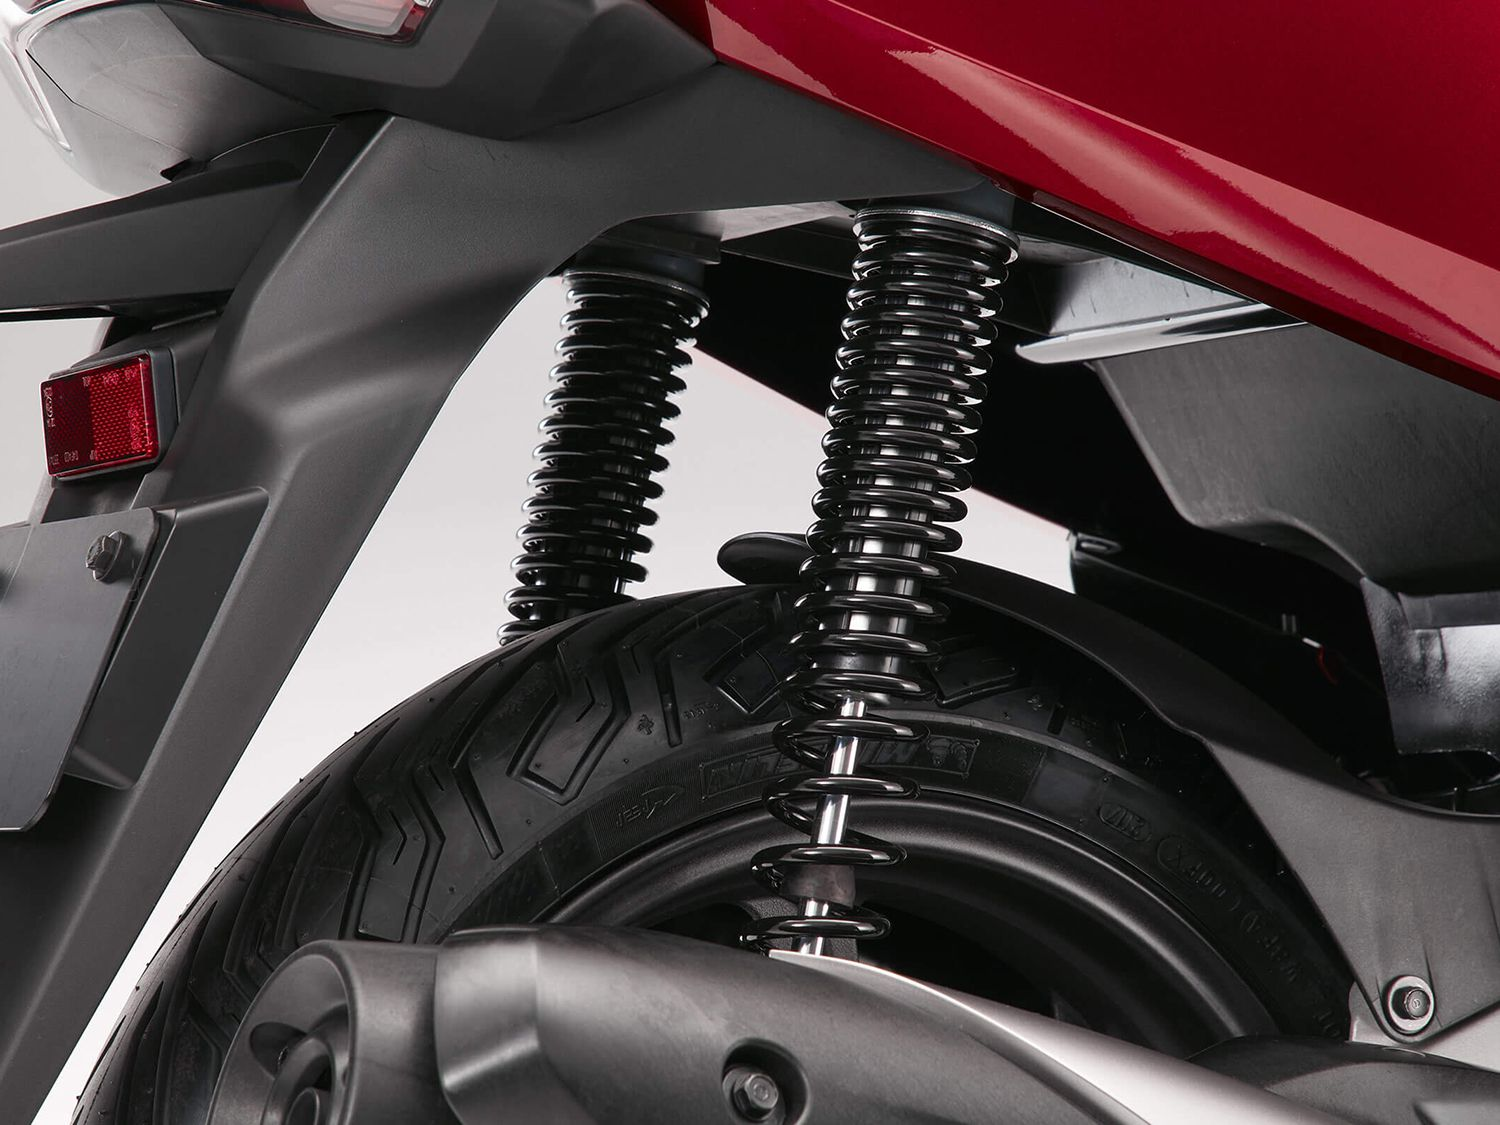 The twin shocks allow for 3.3 inches of travel.